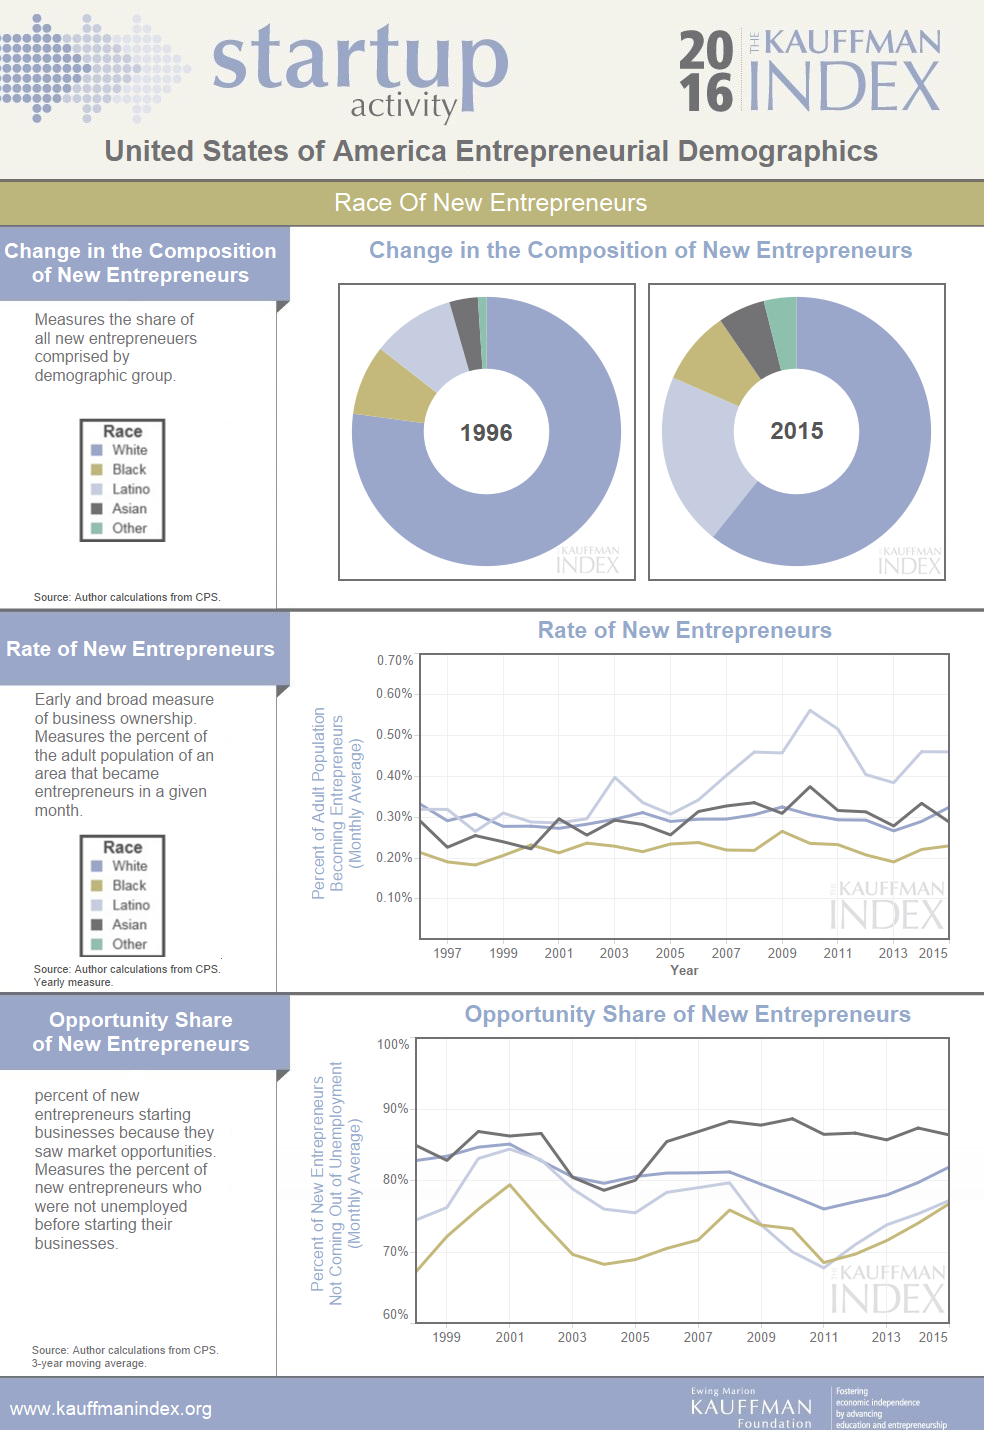 Kauffman Index - 2016 - Startup Activity - Entrepreneurial Demographics Profiles (3).png